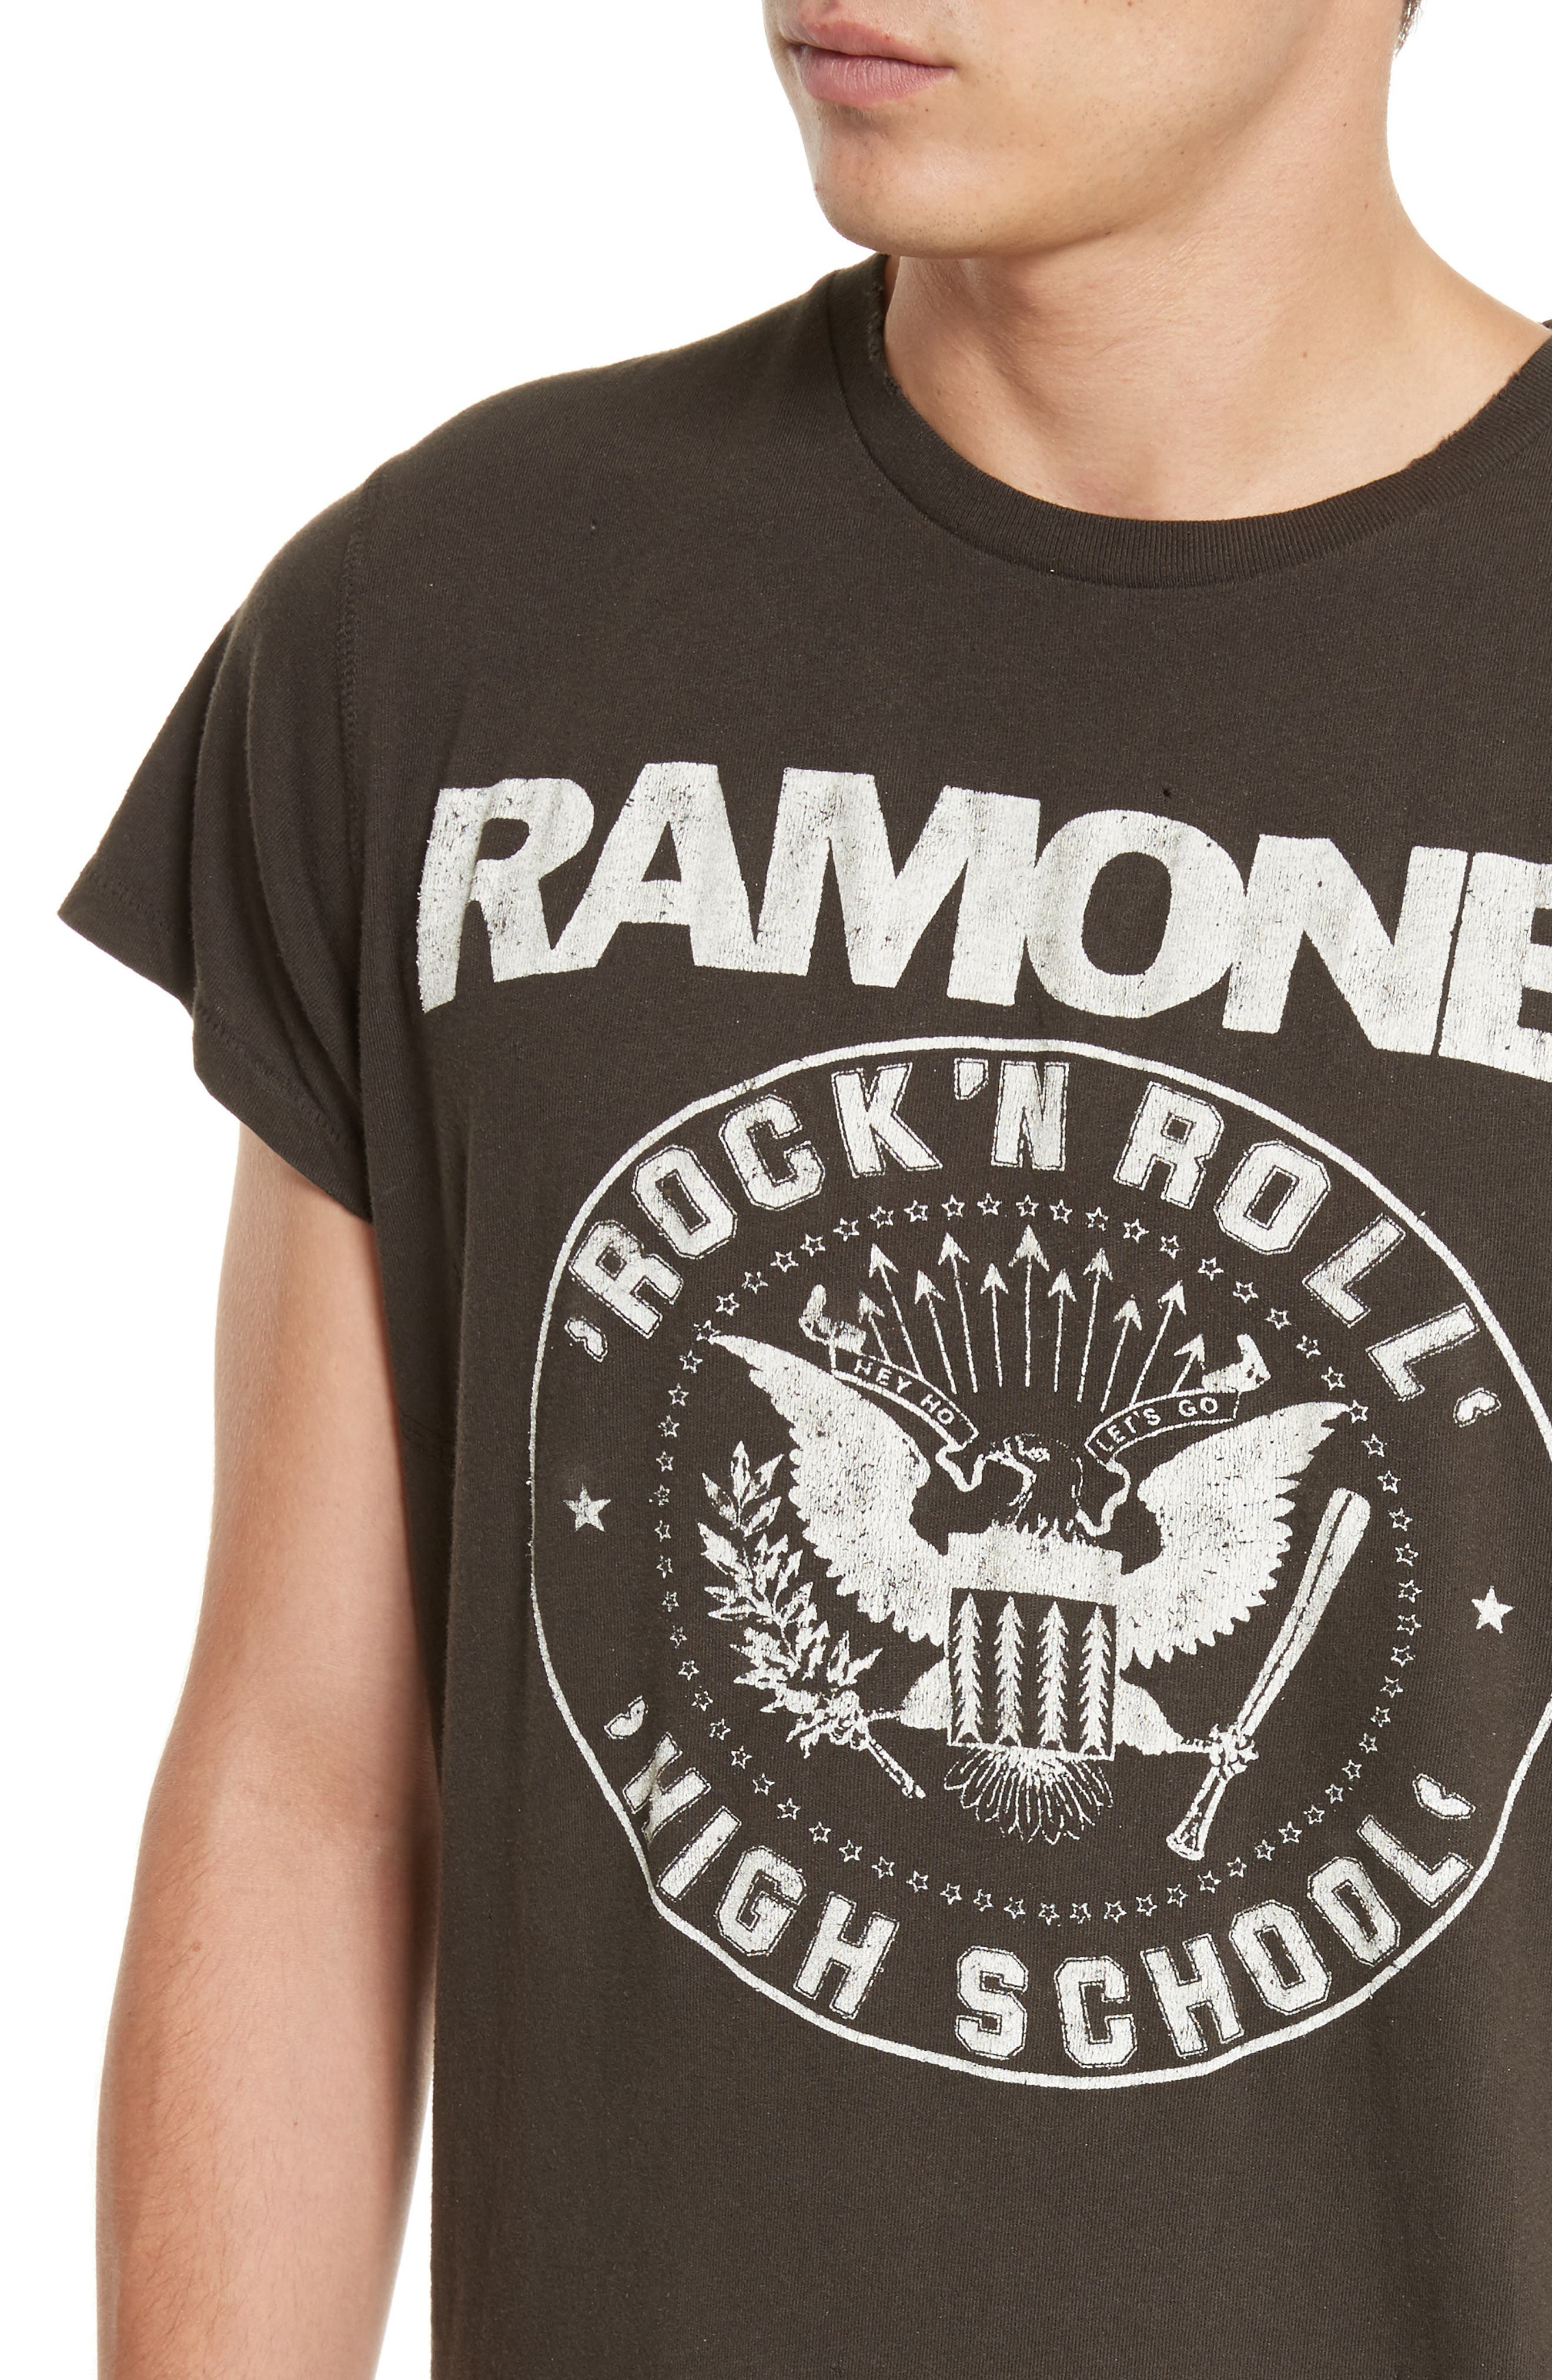 The Ramones Graphic T-Shirt,                             Alternate thumbnail 4, color,                             Dirty Black